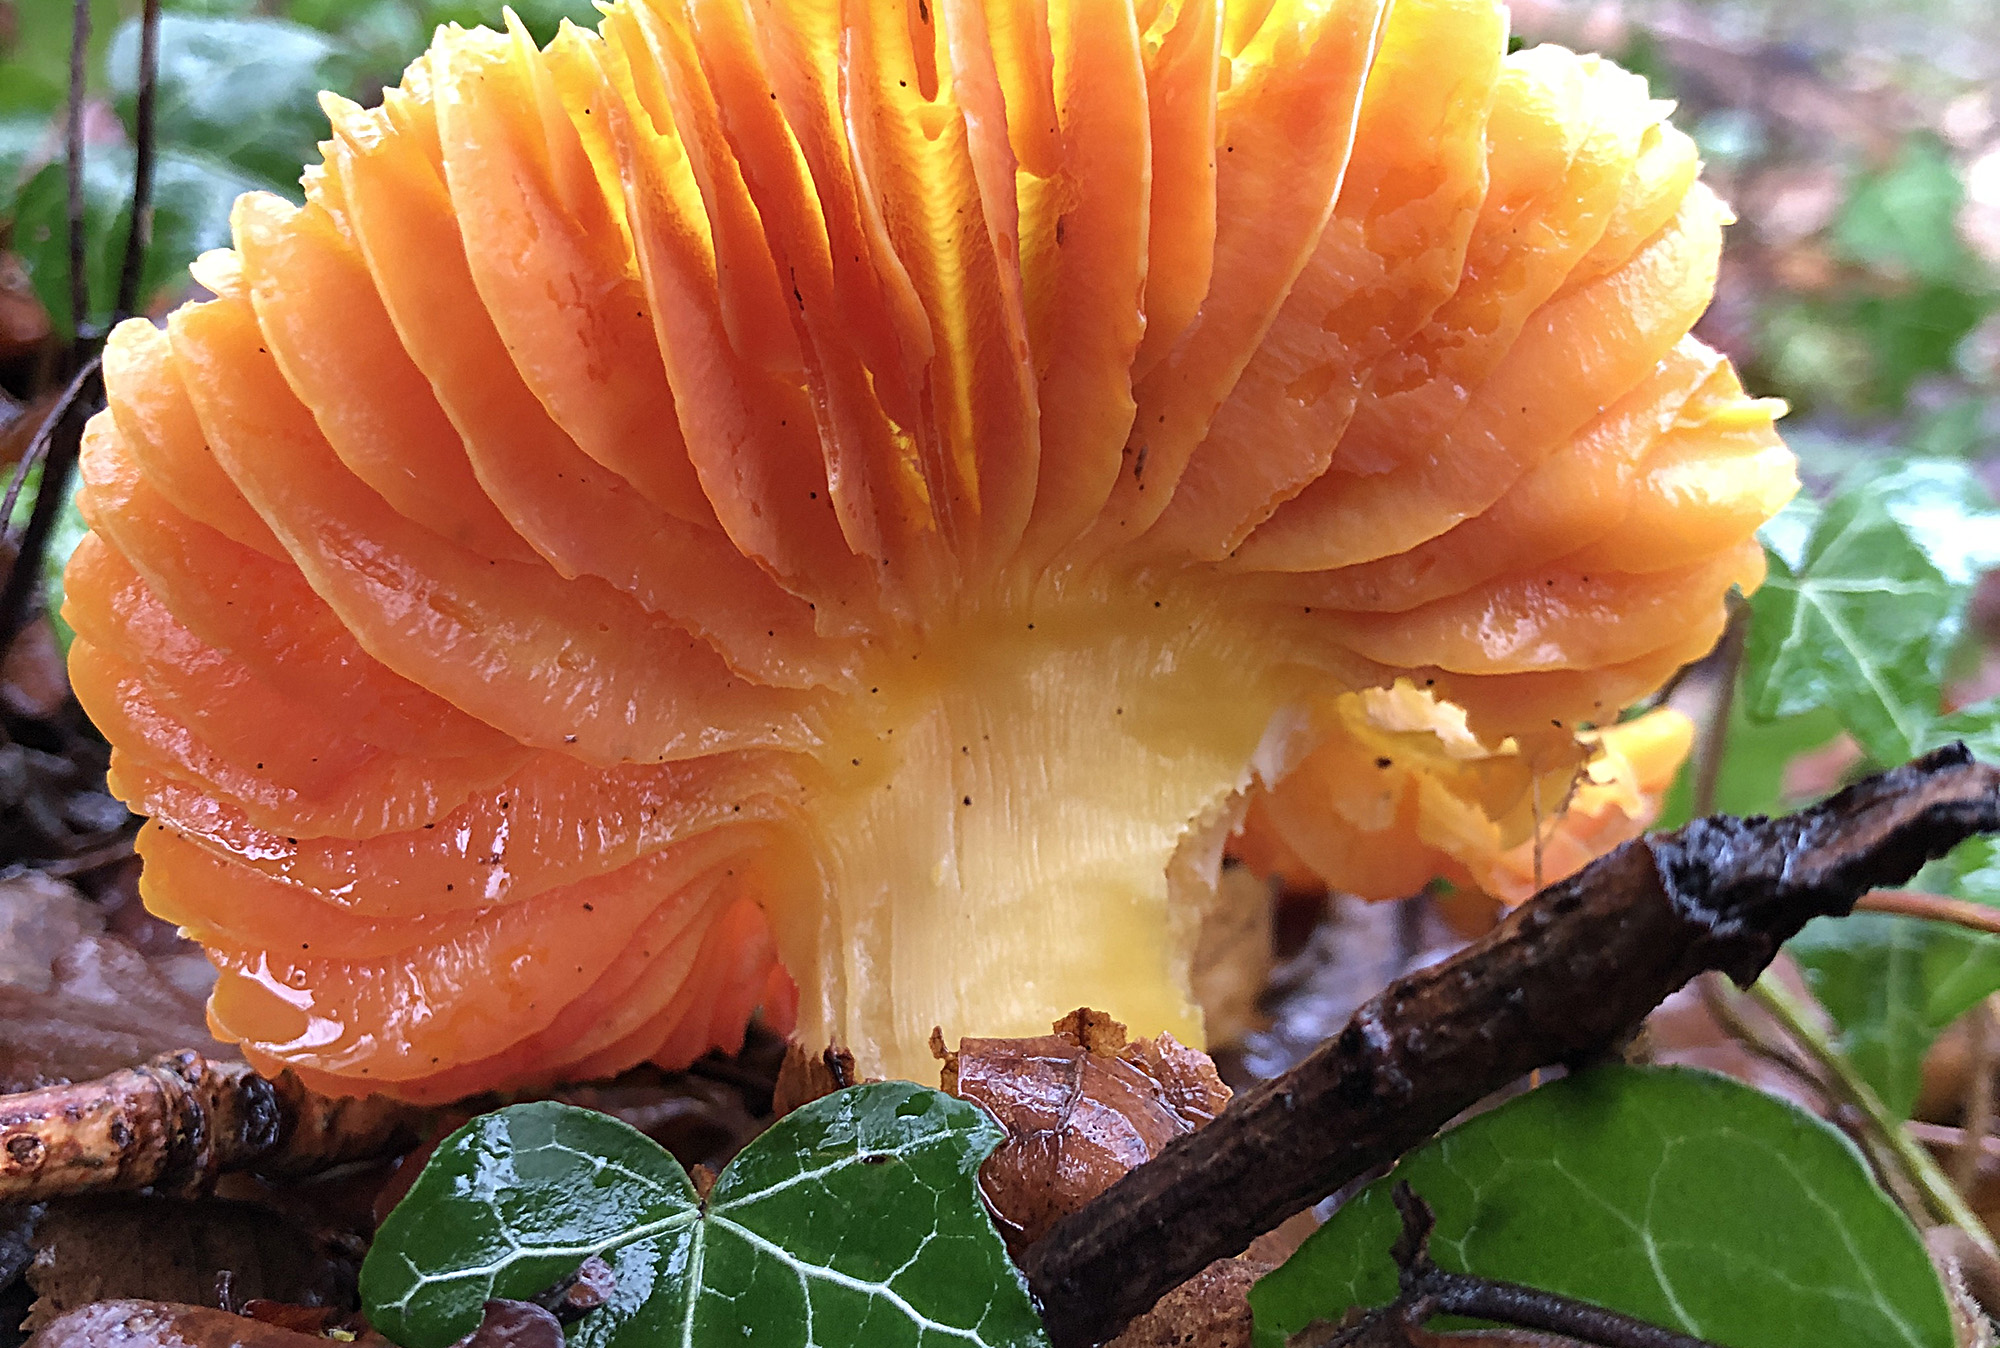 A waxcap mushroom sprouts from a leafy forest floor. Lit from behind by bright sunshine, the orange gills on the waxcap's damp underside glow and glisten.